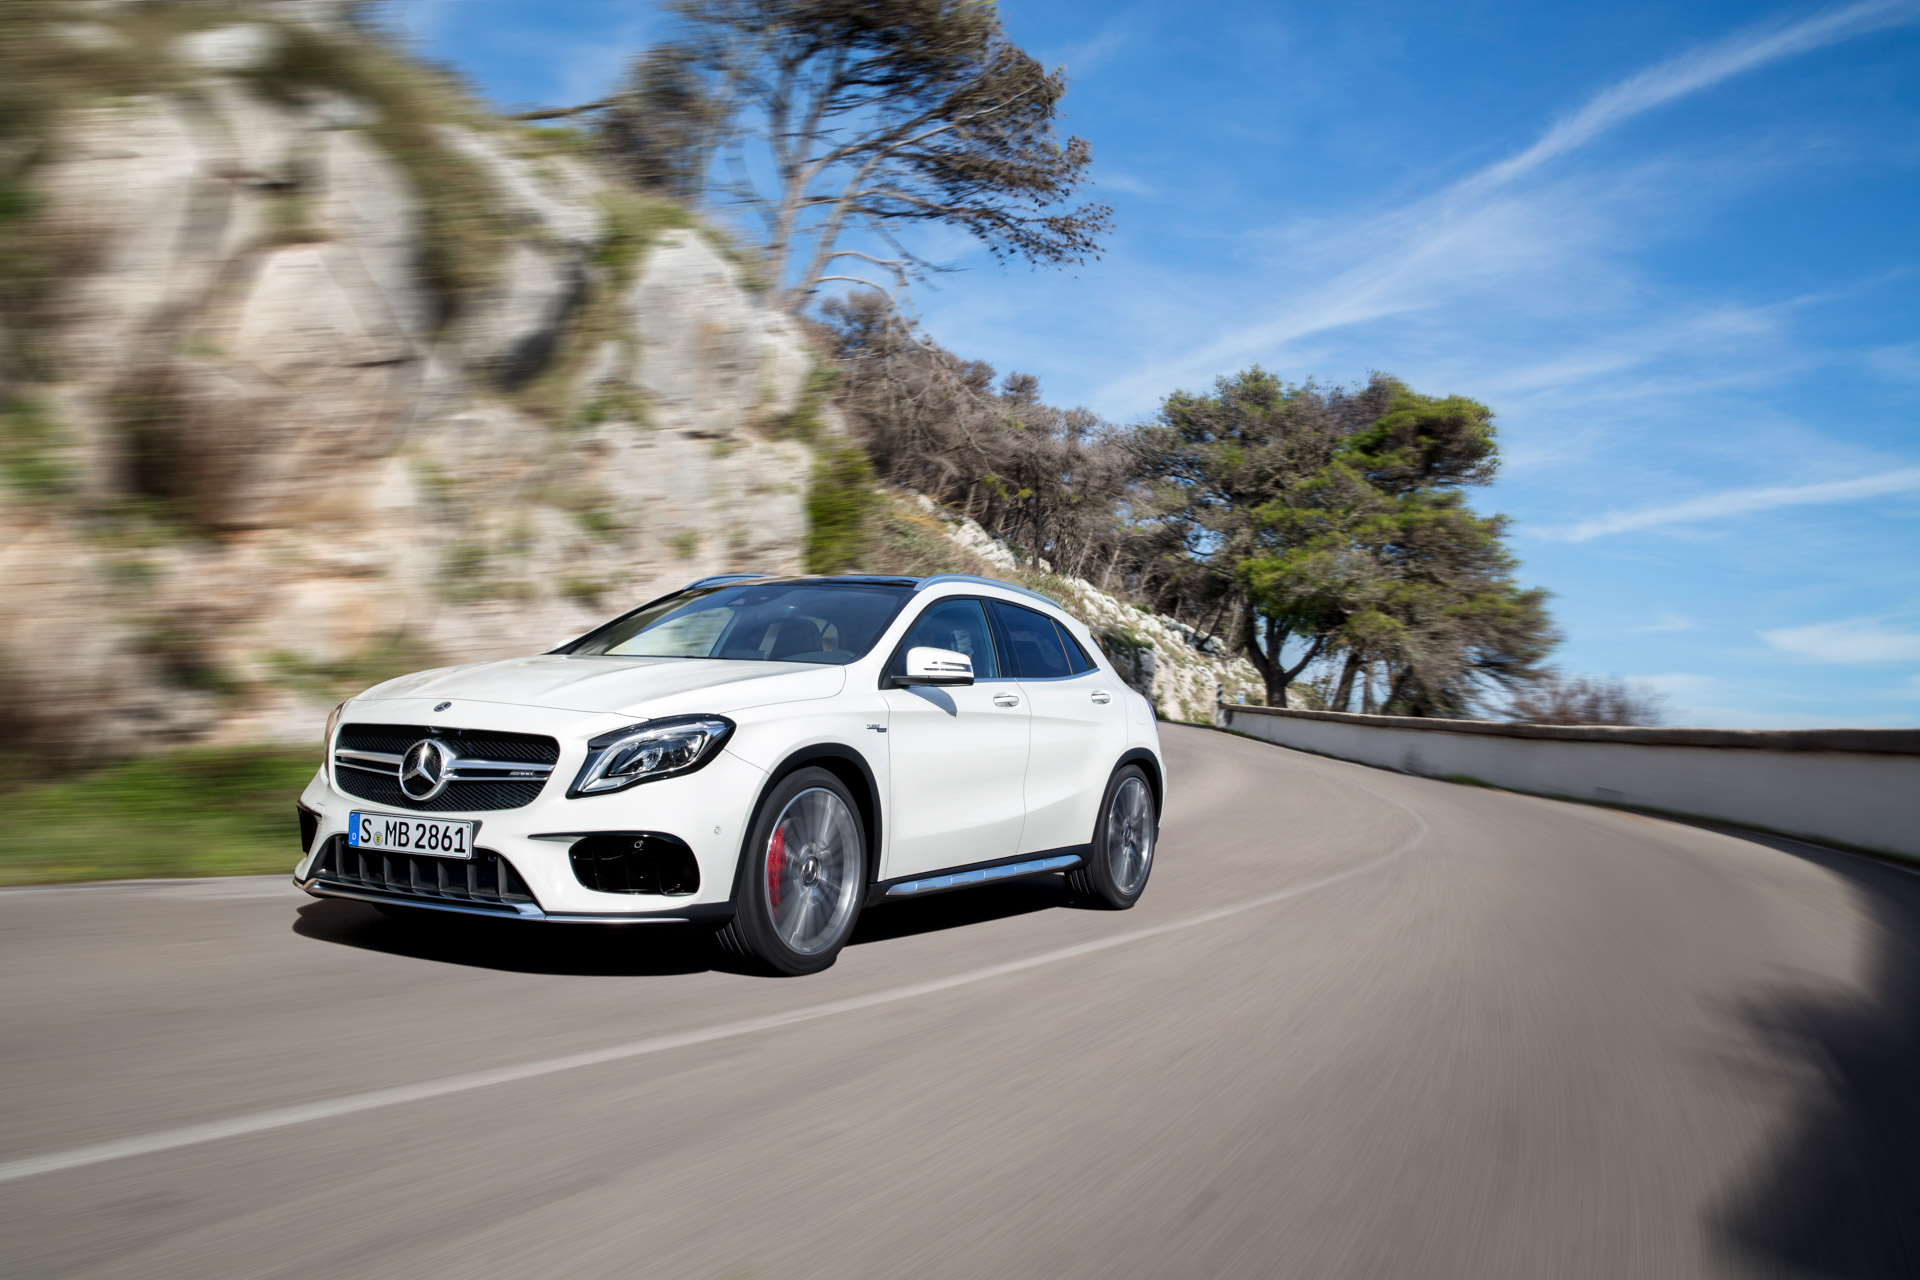 Mercedes-AMG GLA 45 4MATIC, Exterieur, zirrussweiß ;Kraftstoffverbrauch kombiniert:  7,4 l/100 km, CO2-Emissionen kombiniert: 172 g/km Mercedes-AMG GLA 45 4MATIC, exterior, cirrus white; Fuel consumption combined:  7,4 l/100 km; Combined CO2 emissions: 172 g/km